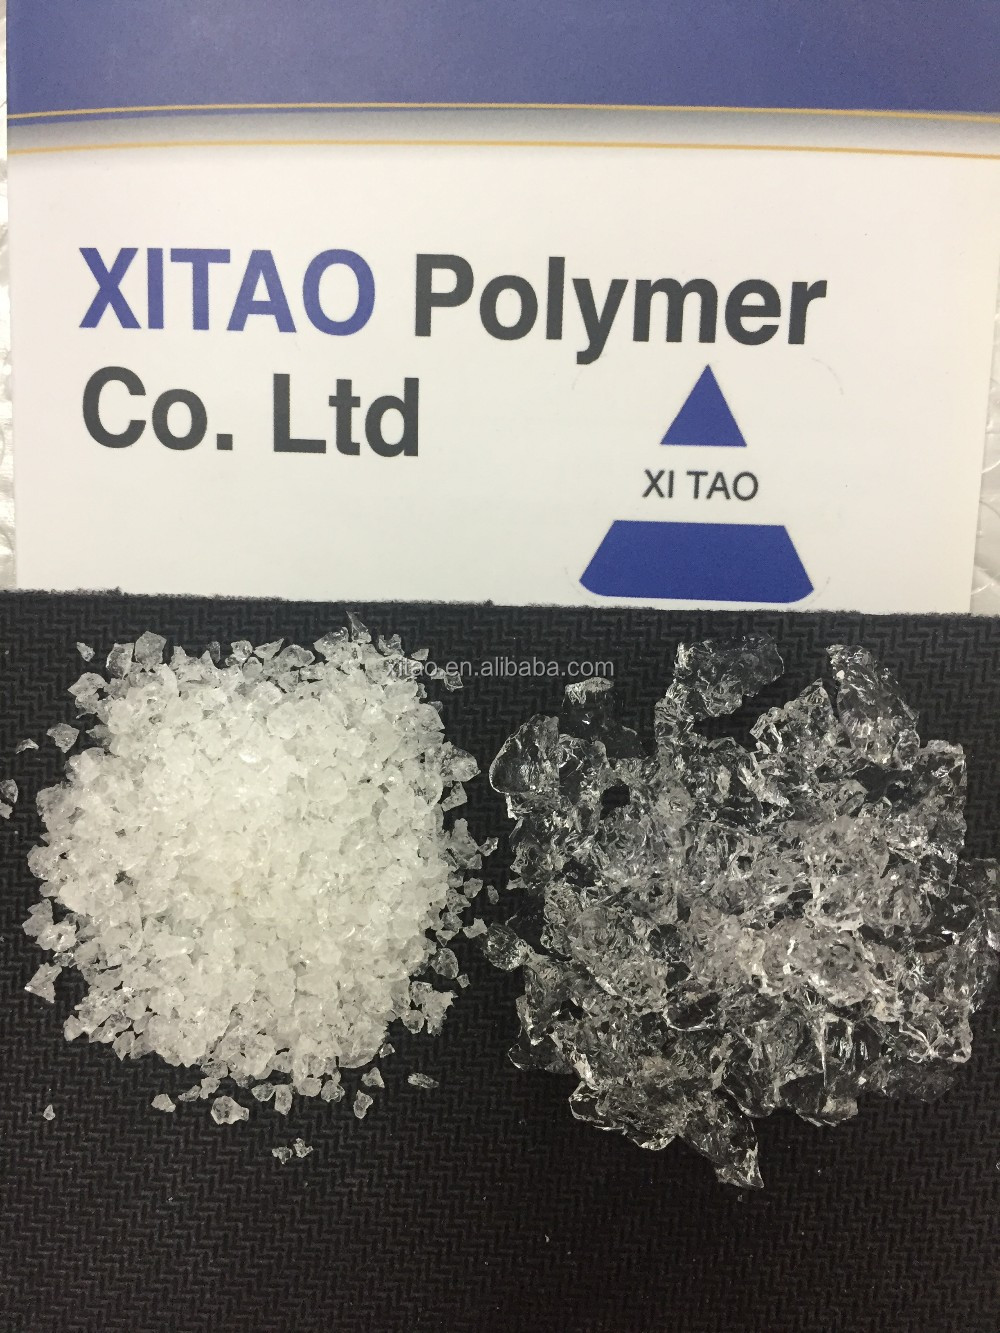 Super absorbent polymer/Water absorbing material used in flood control/SAP flood bag material